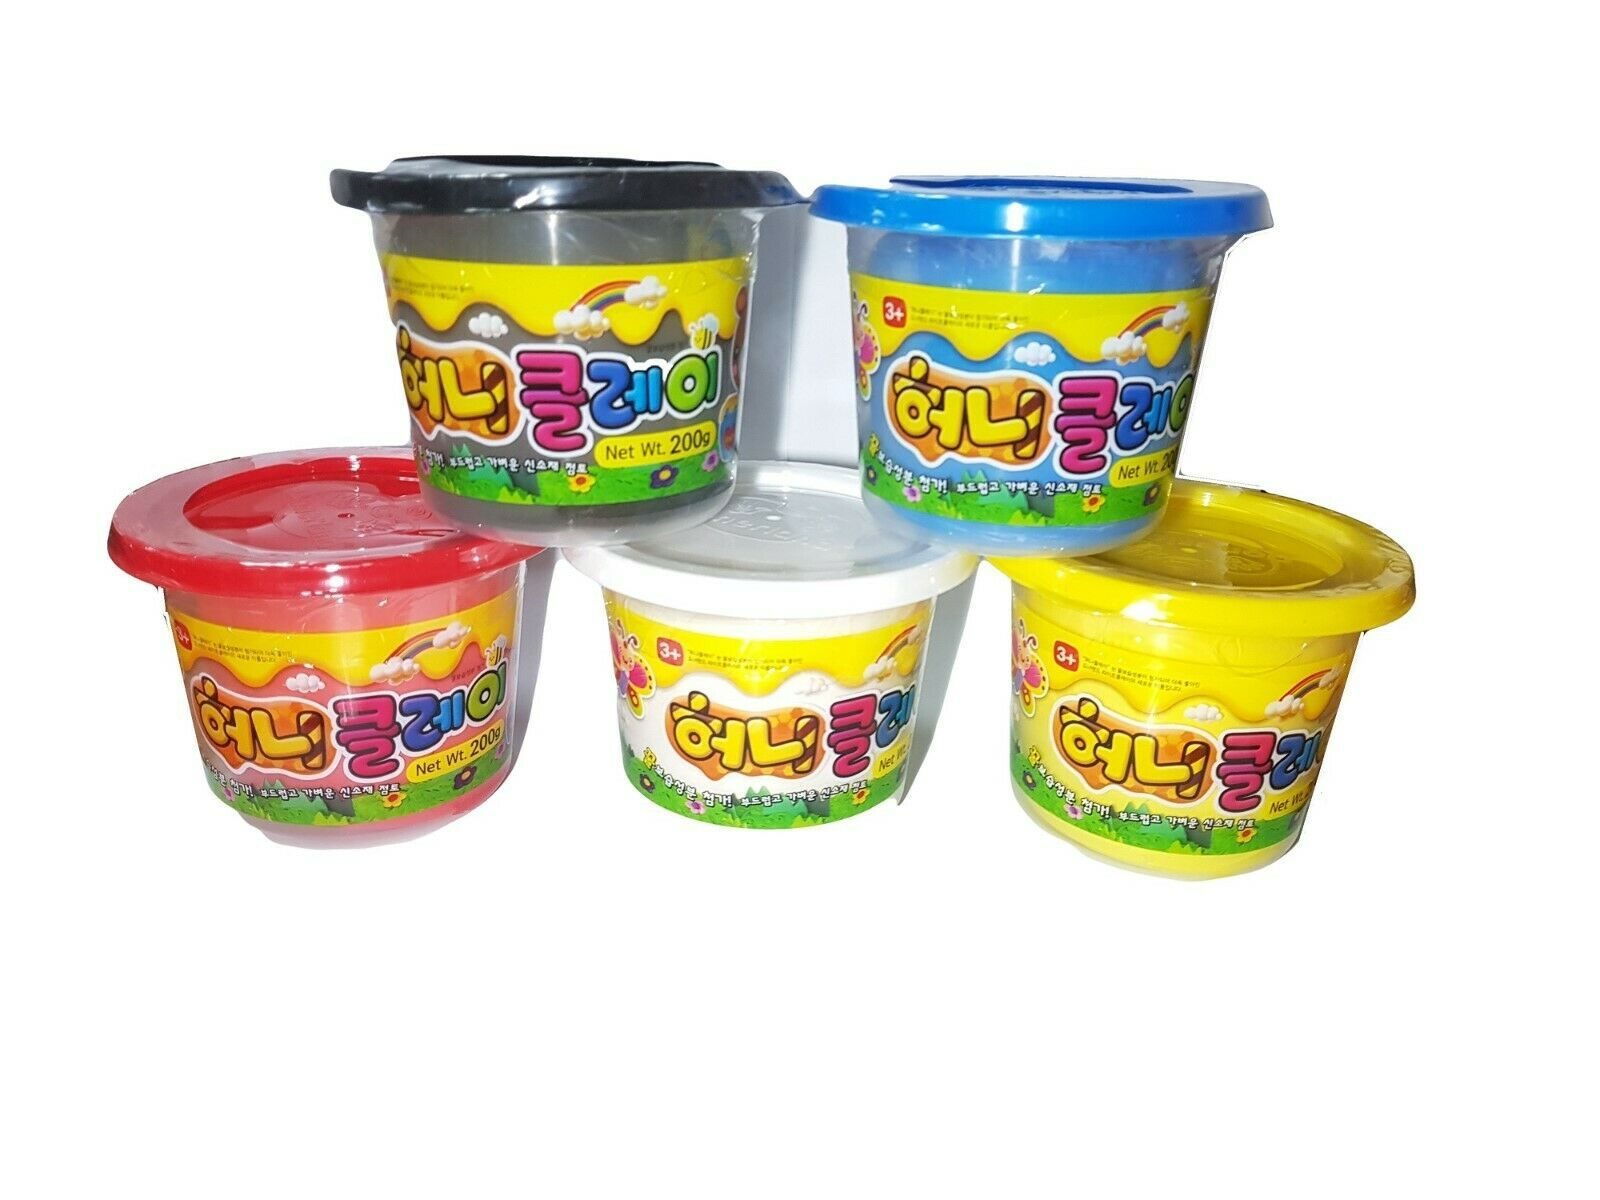 Donerland Honey Clay 5-Color Set 0.4lbs 200g (Red, Blue, Yellow, White, Black)